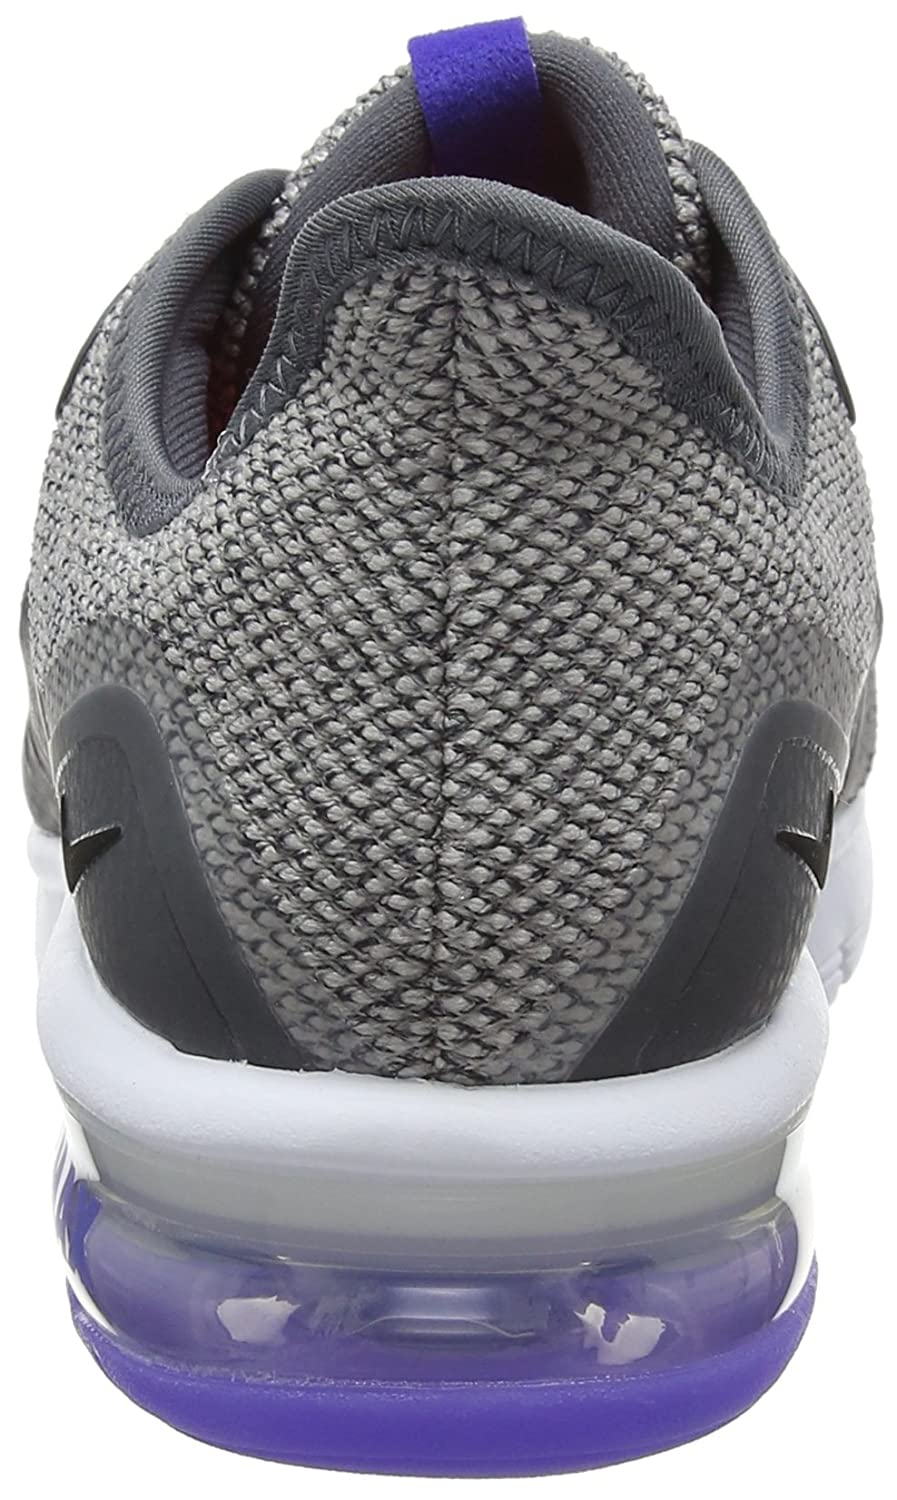 NIKE Women's Air Max Sequent 3 Running Shoe B07144JJ8K 8 B(M) US|Dark Grey/Black-moon Particle